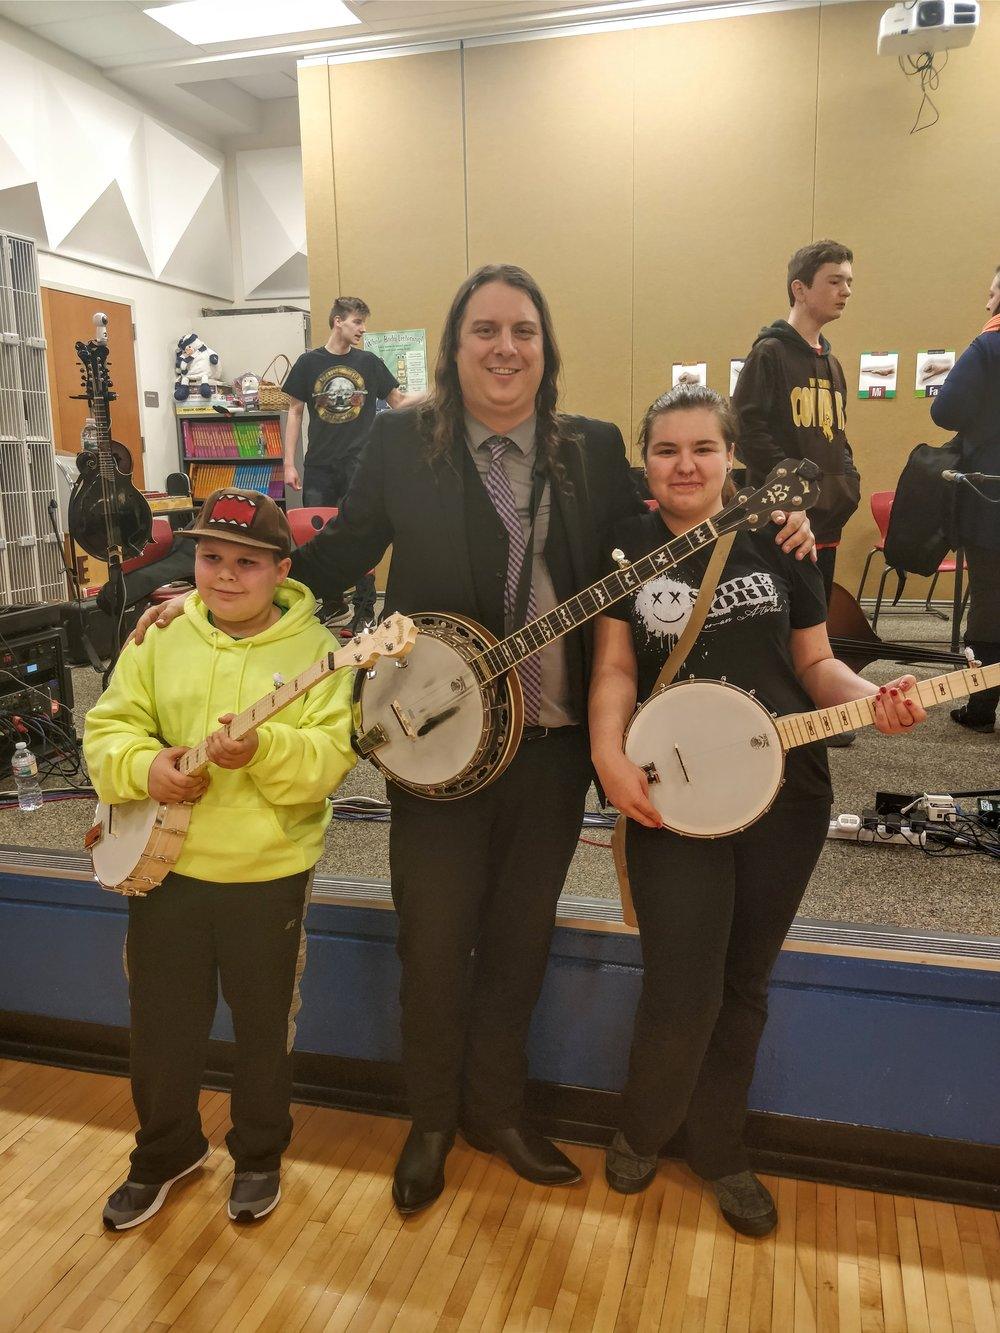 Deering Banjos  has a wonderful  Music in the Schools  program that allowed us to have 5  Goodtime  Special banjos waiting for us when we arrived in Hanna. Word is, the day after we left, four students asked to sign them out.